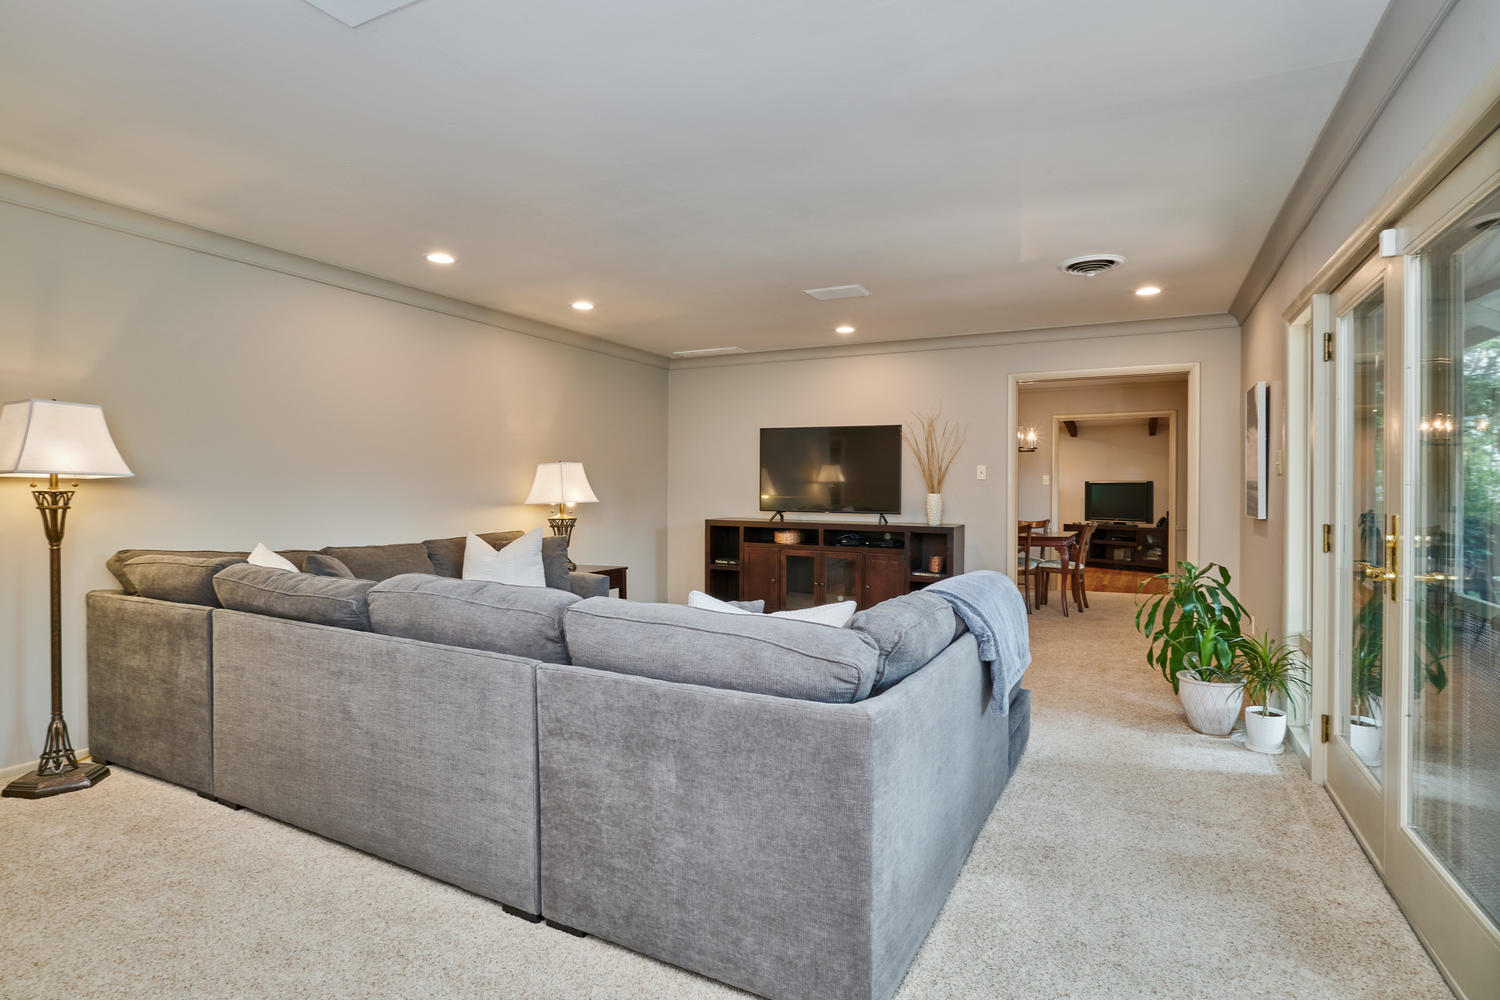 Expansive Living Areas Through This Elegant Home!